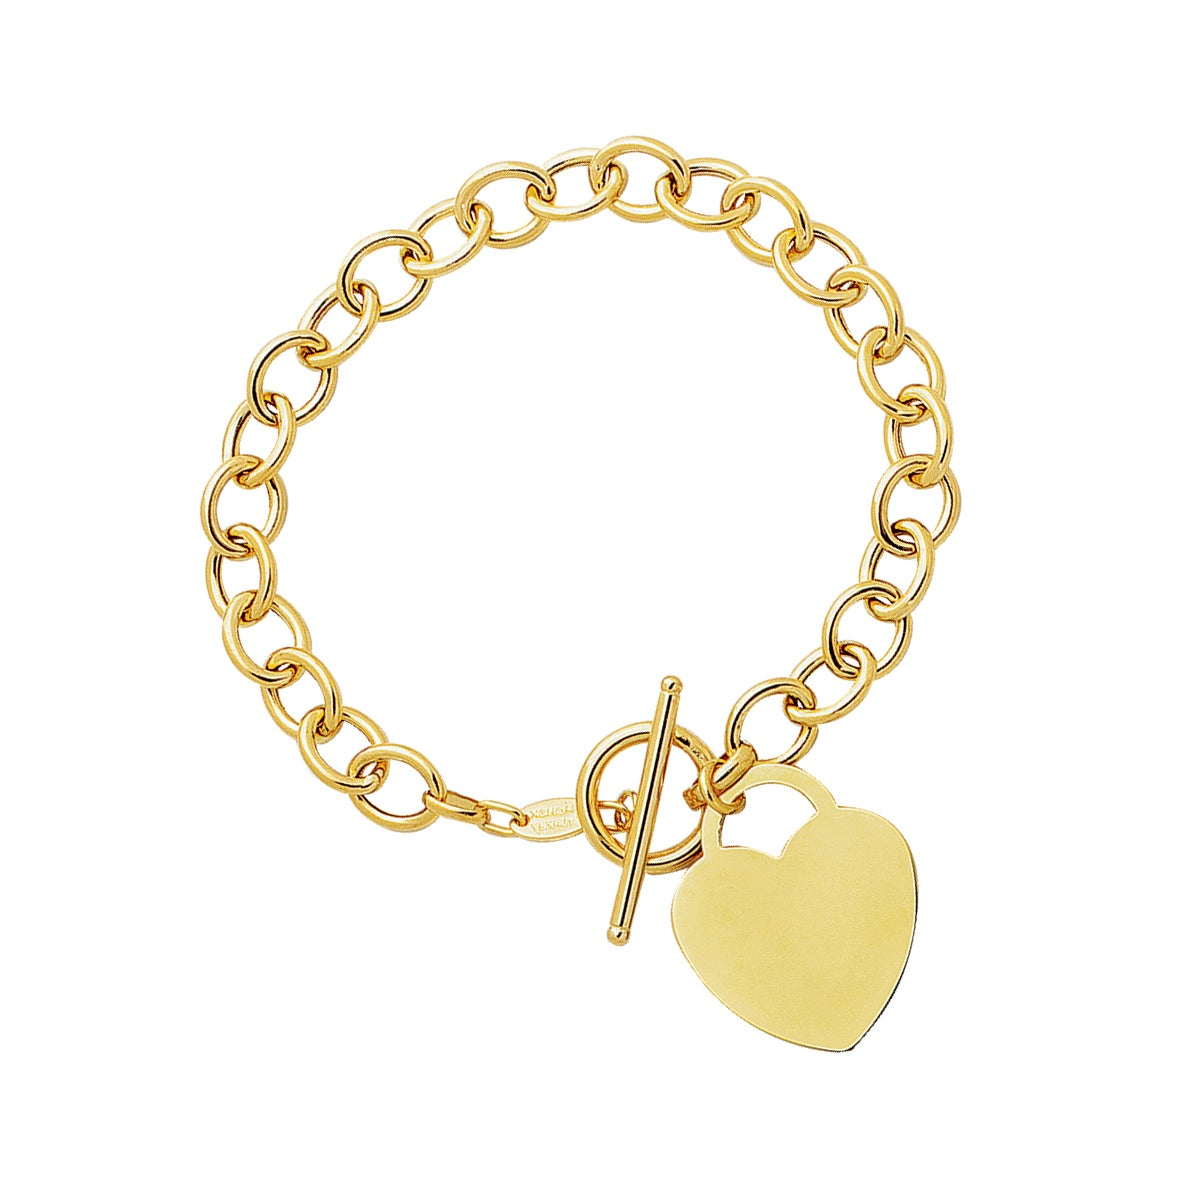 14k Yellow Gold Heart Charm Toggle Bracelet On Free Shipping Today 9104108